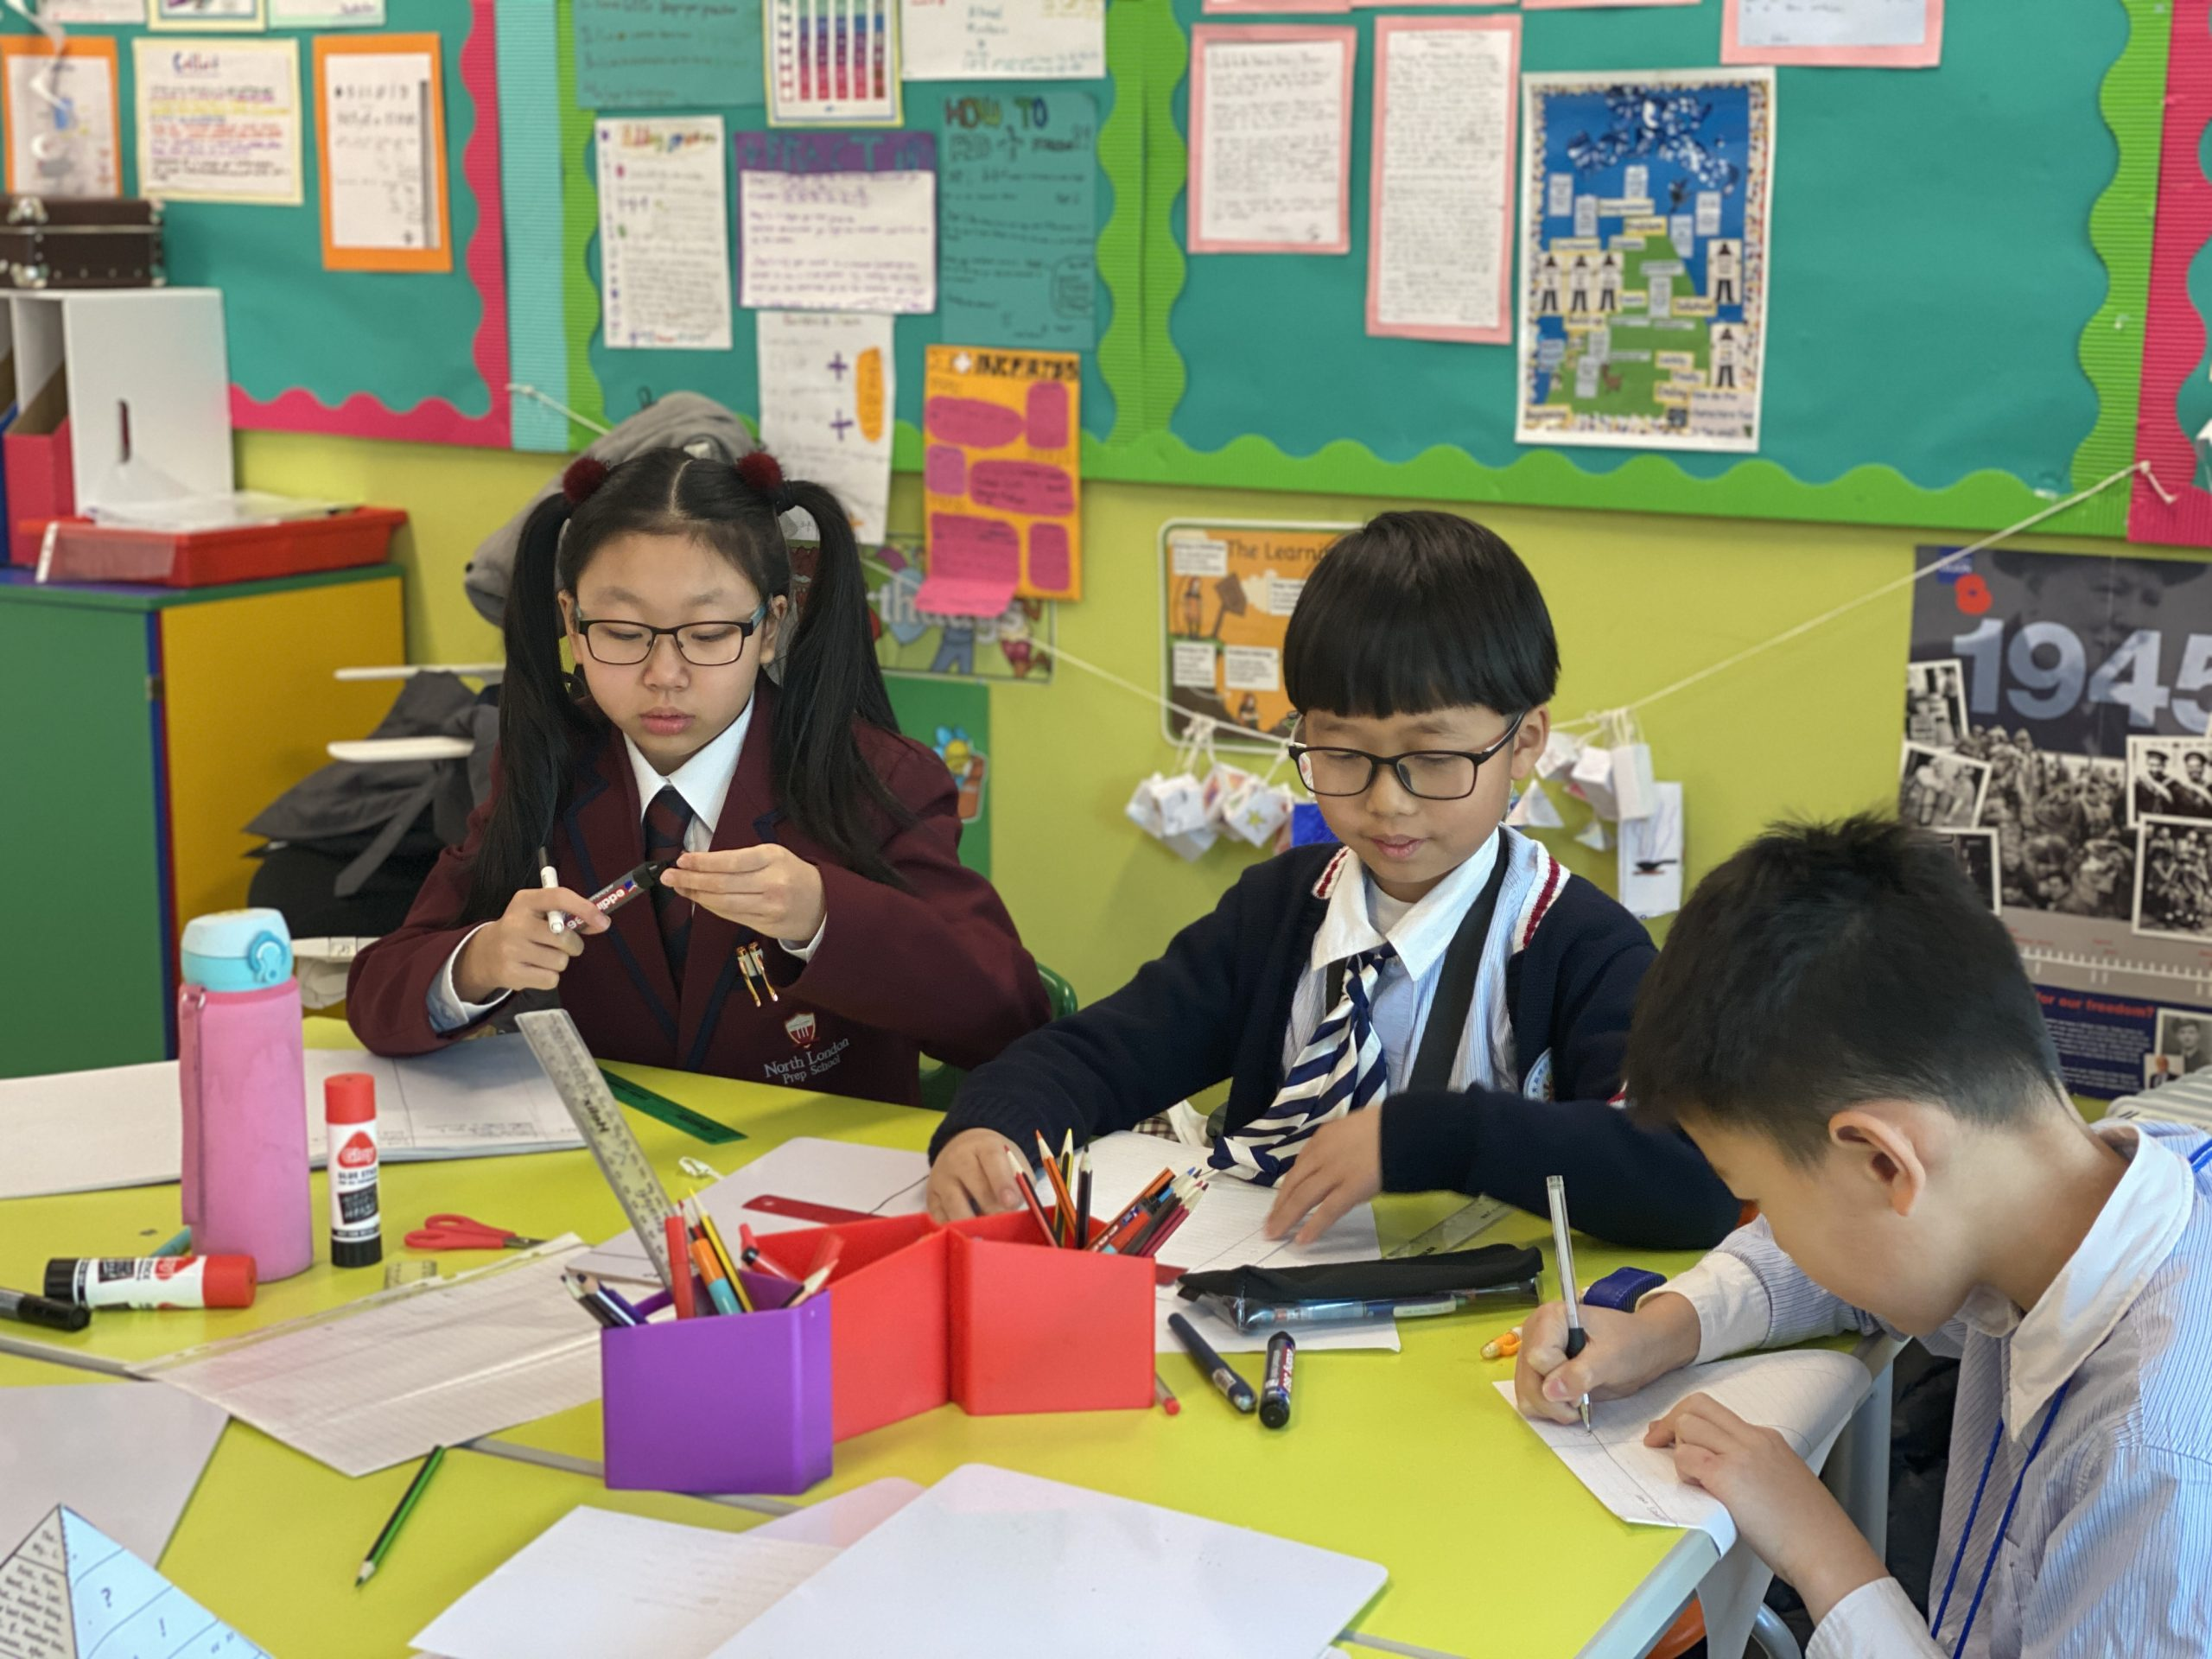 Prep School Entrance Test for North London Grammar School which is an outstanding school.